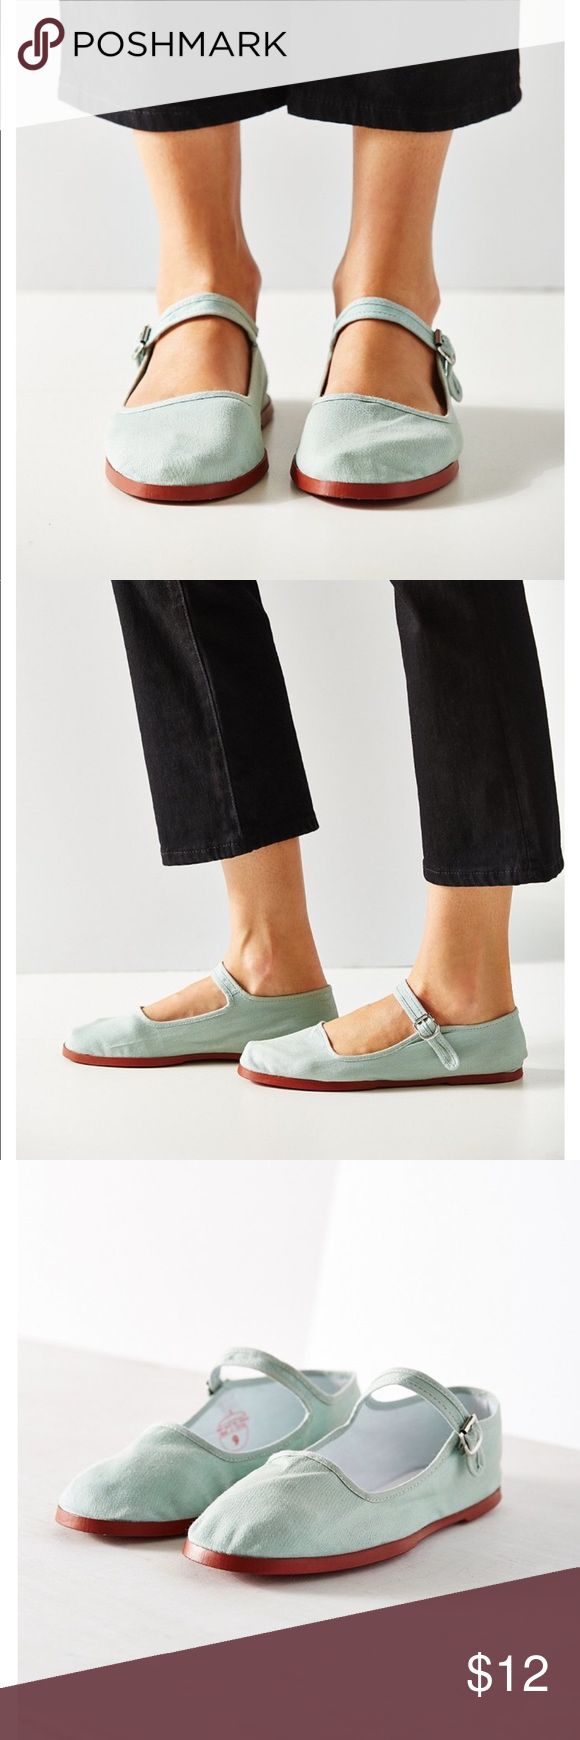 Urban Outfitters - Cotton Mary Jane - Teal. NWT NWT.  Basic Mary Jane. Color is Denim/Teal Urban Outfitters Shoes Flats & Loafers